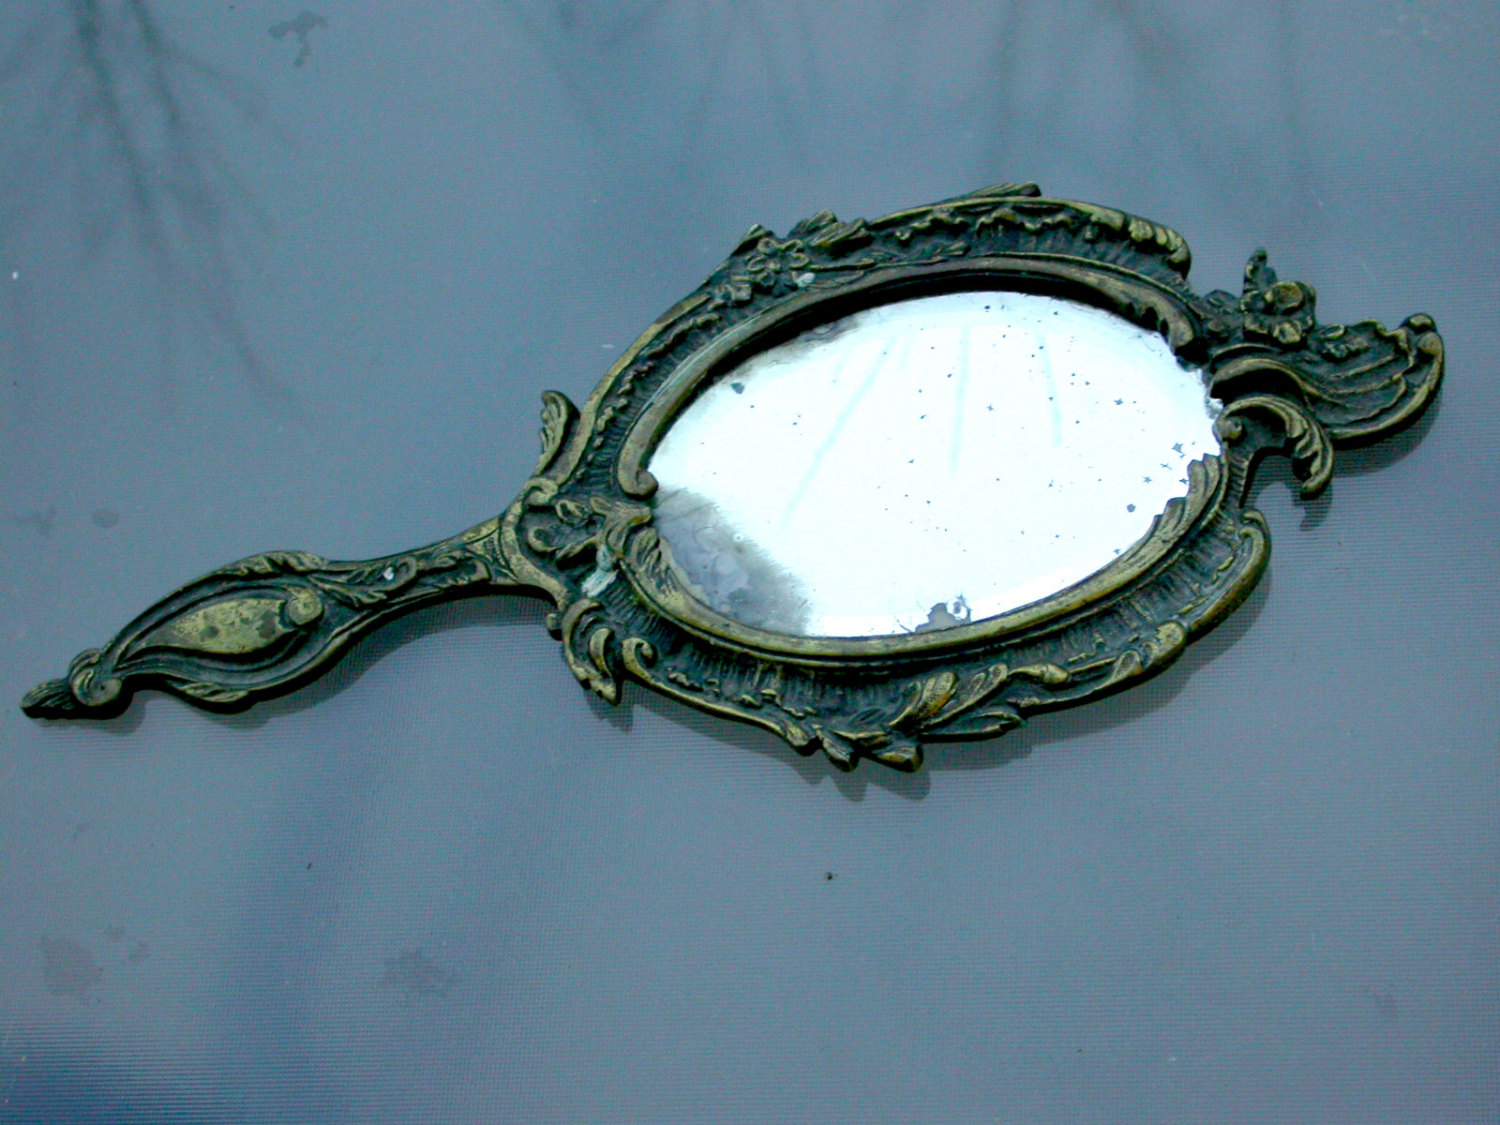 Elizabeth Bathory's Handheld Mirror